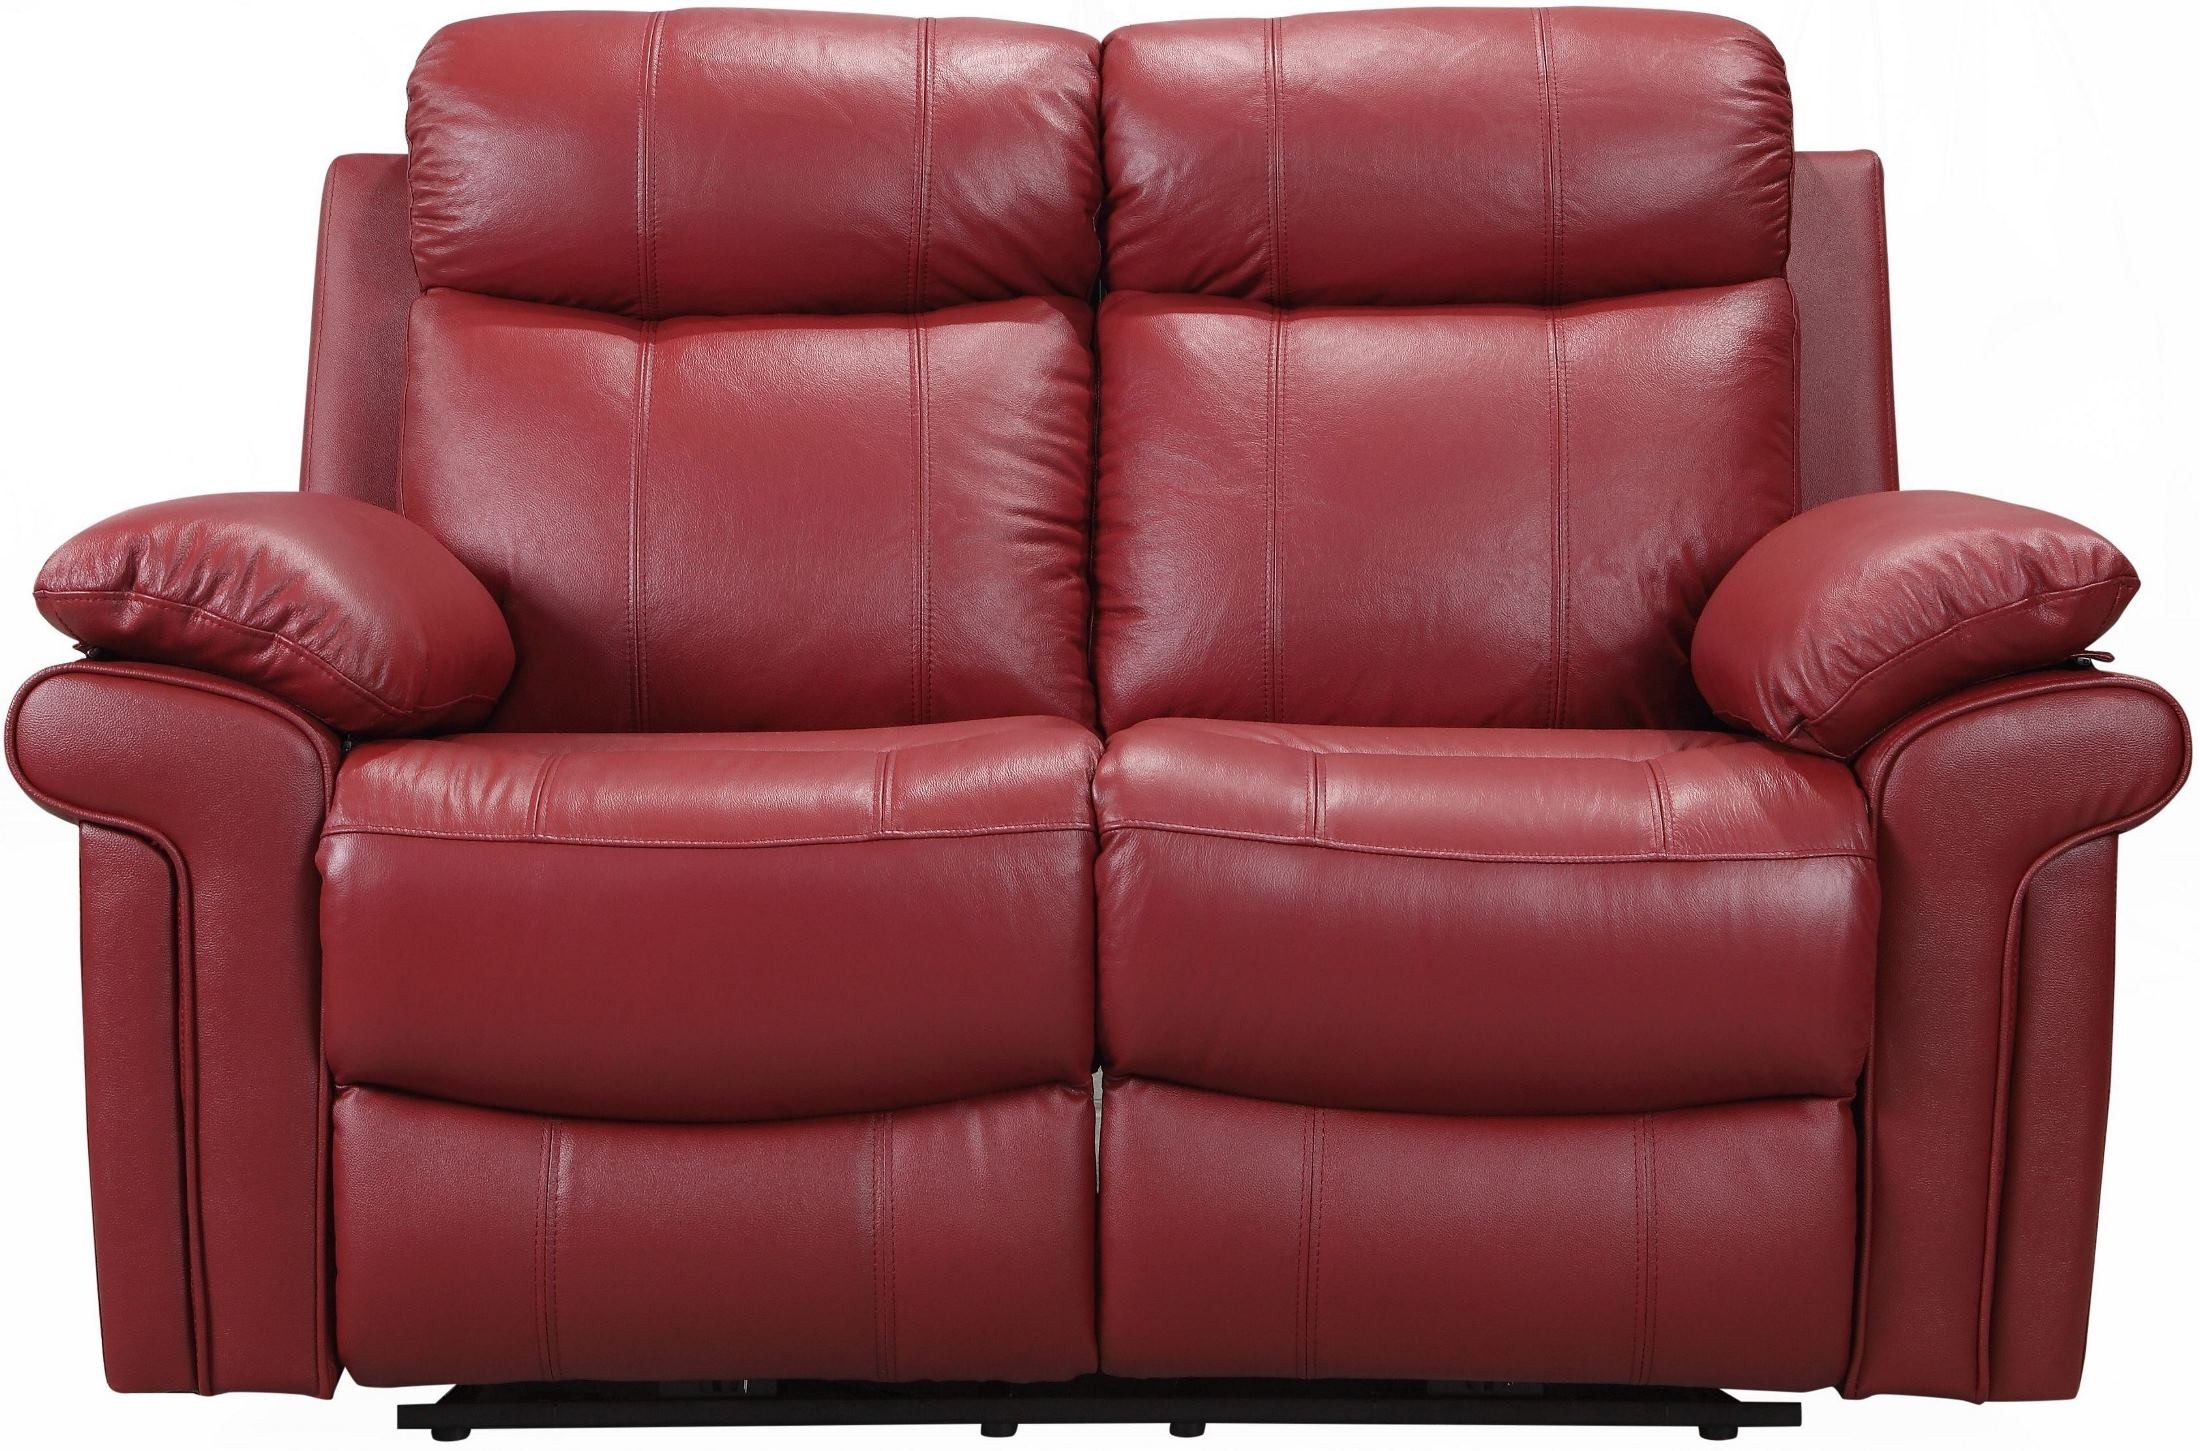 Shae Joplin Red Leather Power Reclining Loveseat From Luxe Leather Coleman Furniture